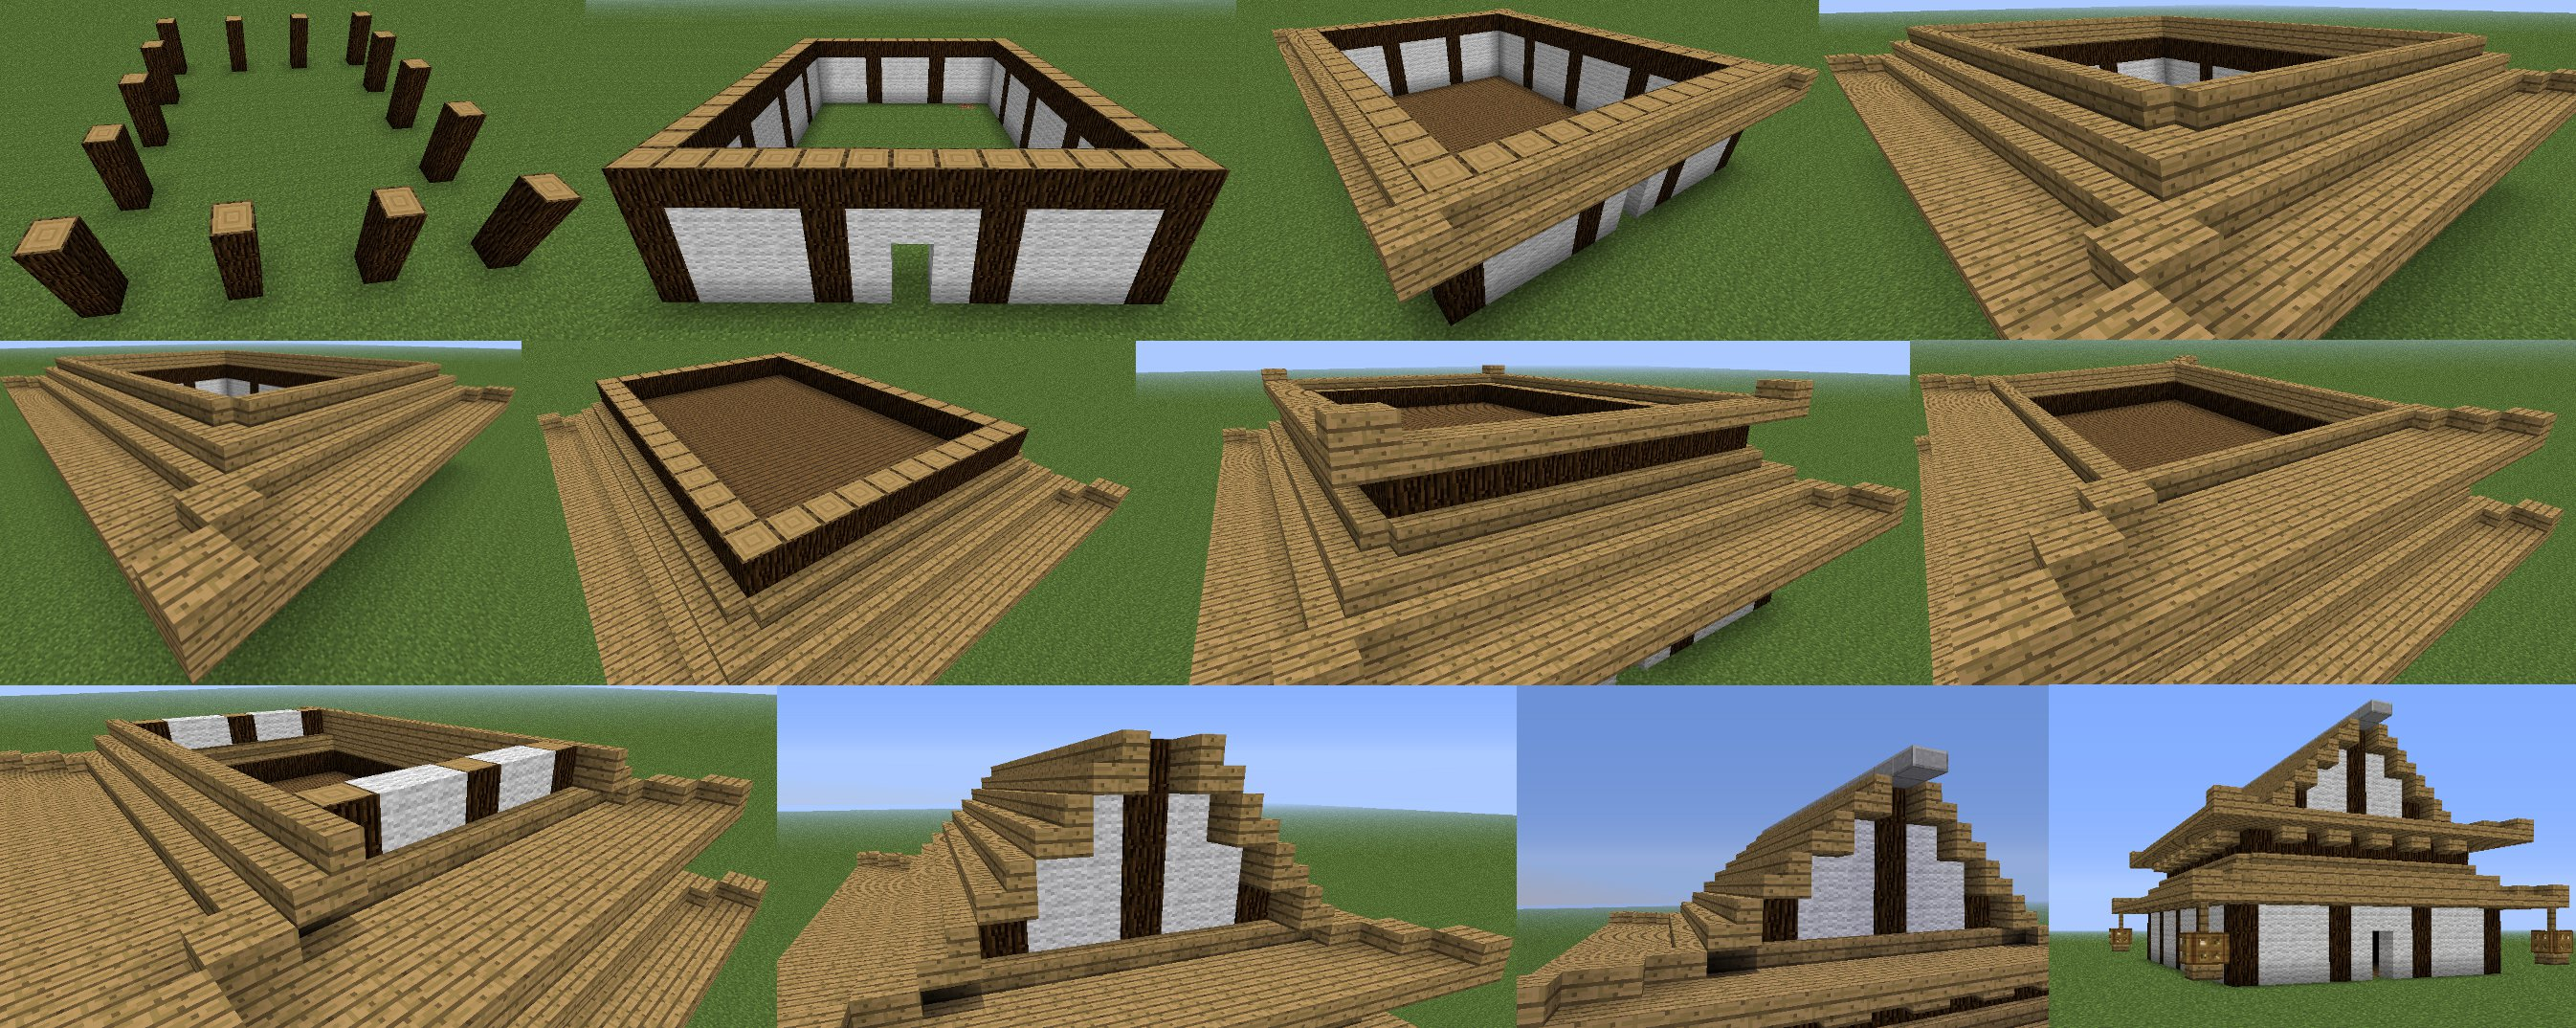 Japanese House Design Minecraft Rumah Joglo Limasan Work